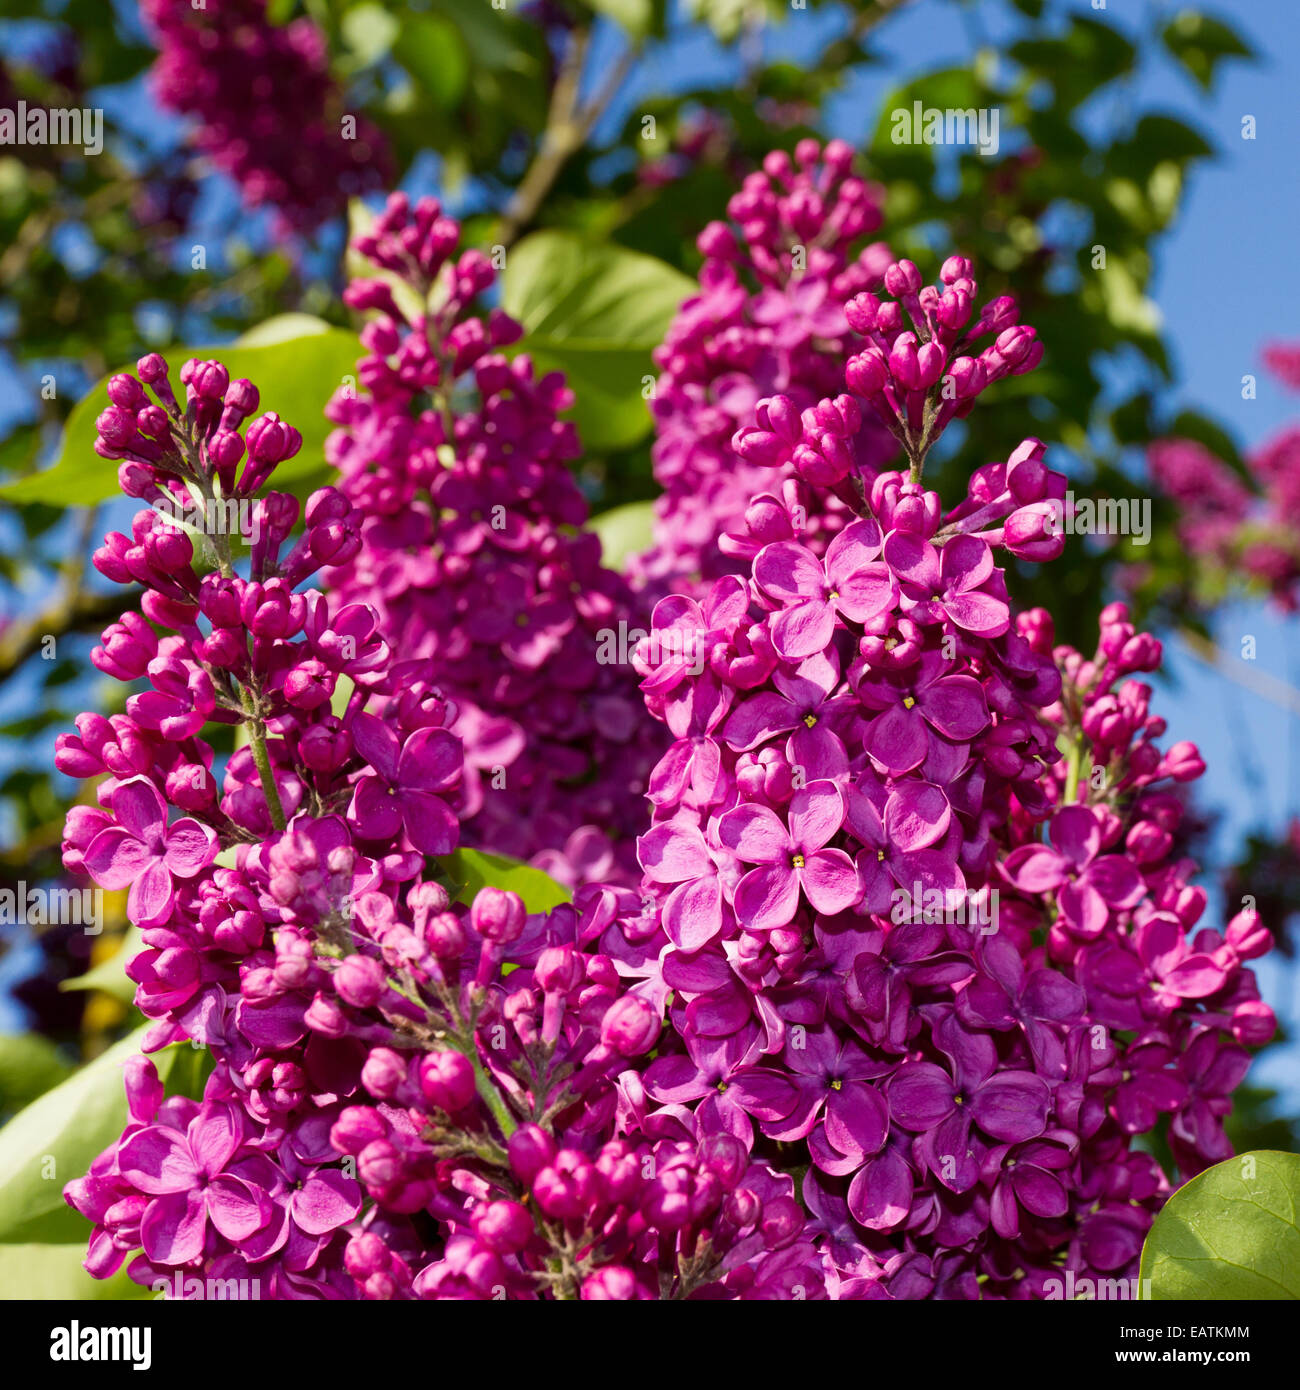 bunch of lilac flower - Stock Image